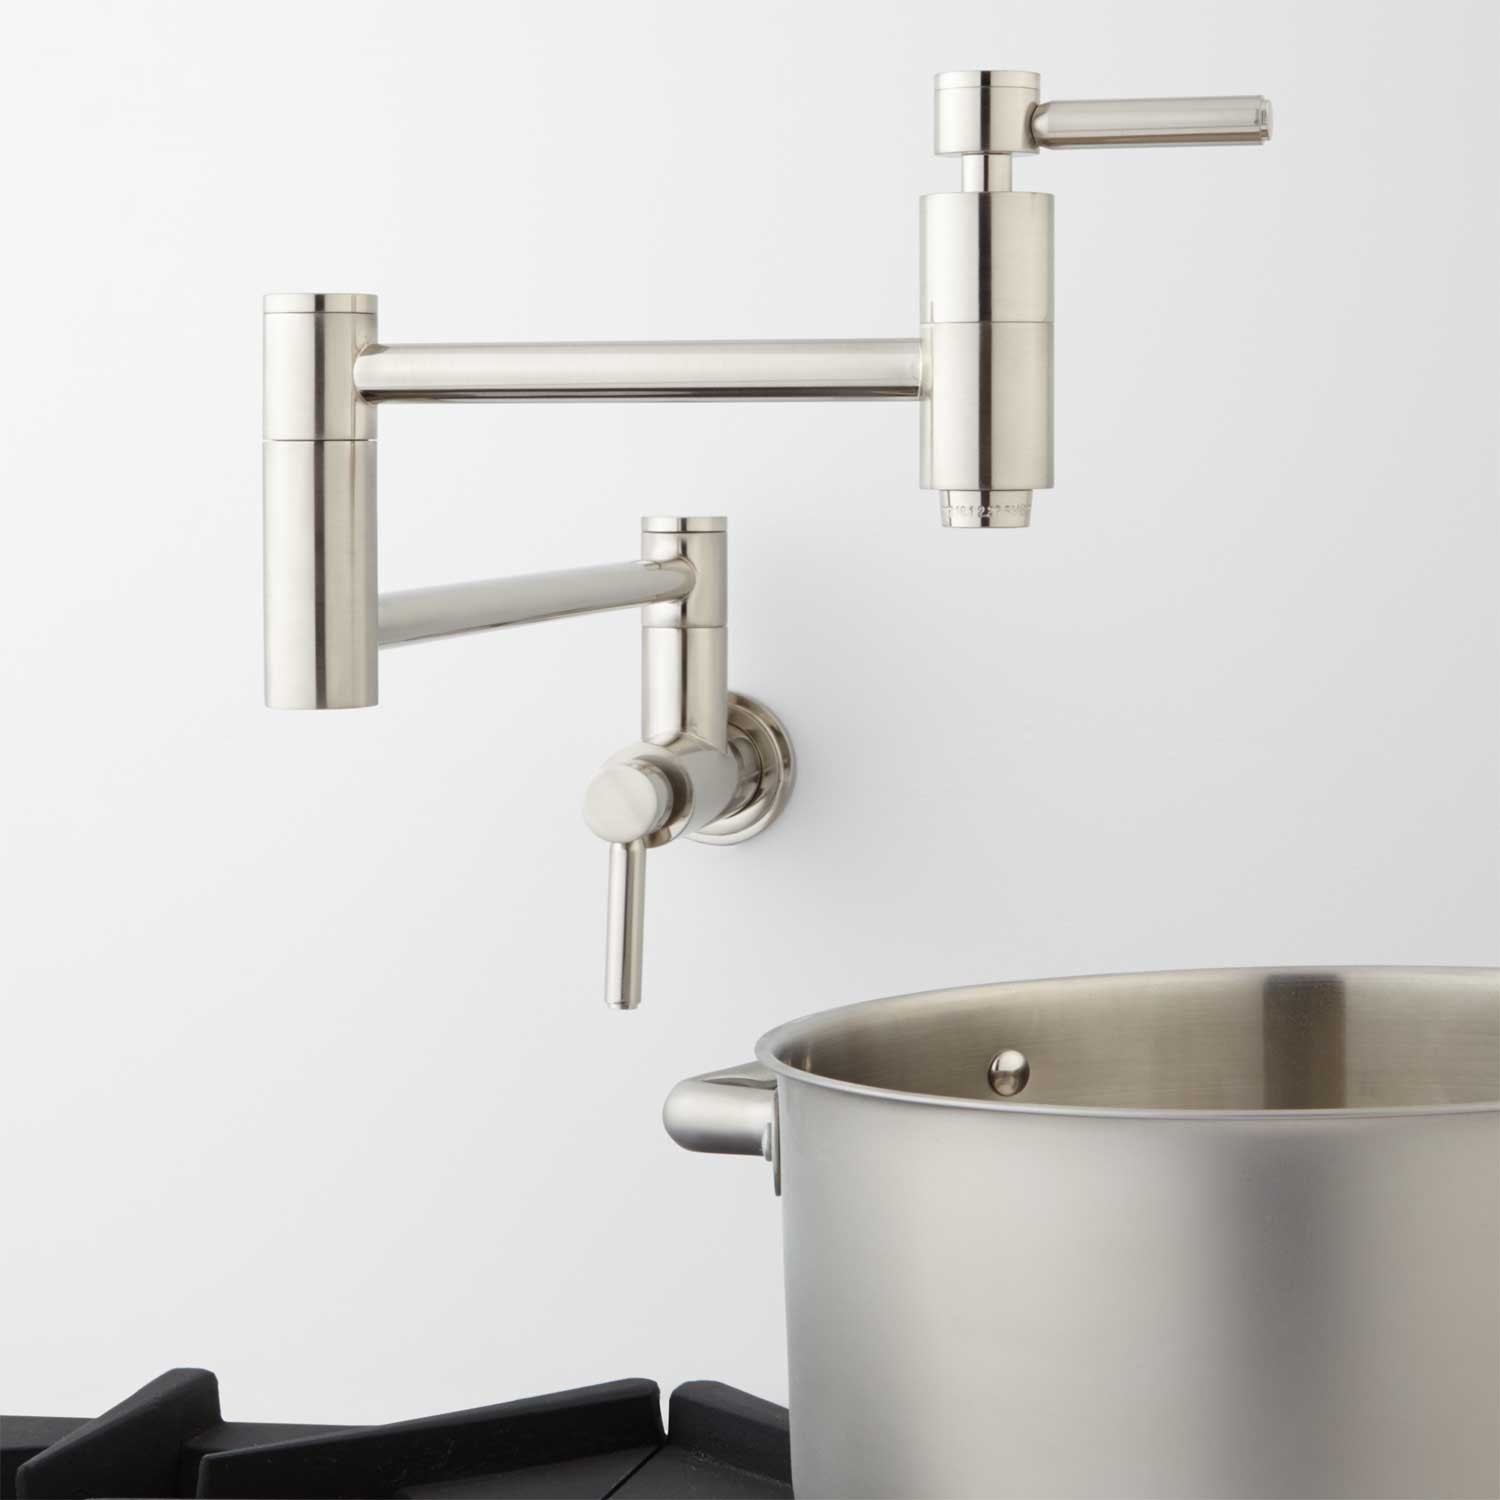 installation pull down filokitch new stainless handle kitchen sink luxury giagni collection steel lovely faucet of fresco